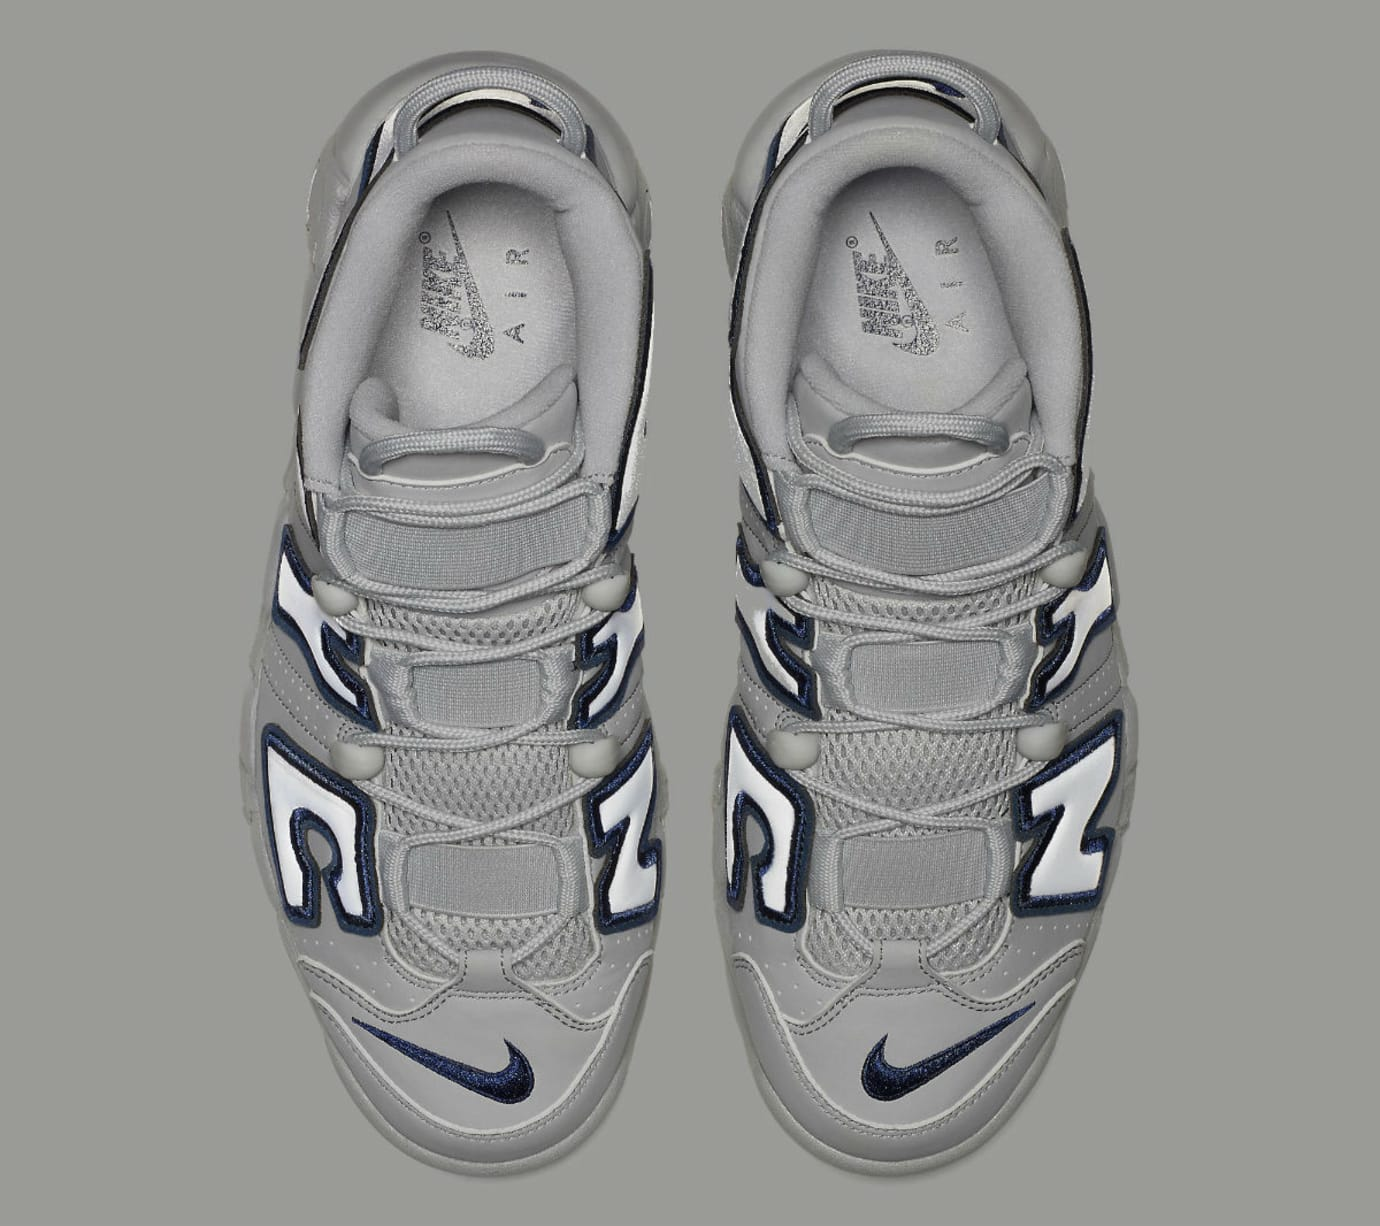 quality design 60dc7 9b111 Nike Air More Uptempo NYC Release Date AJ3137-001 Top